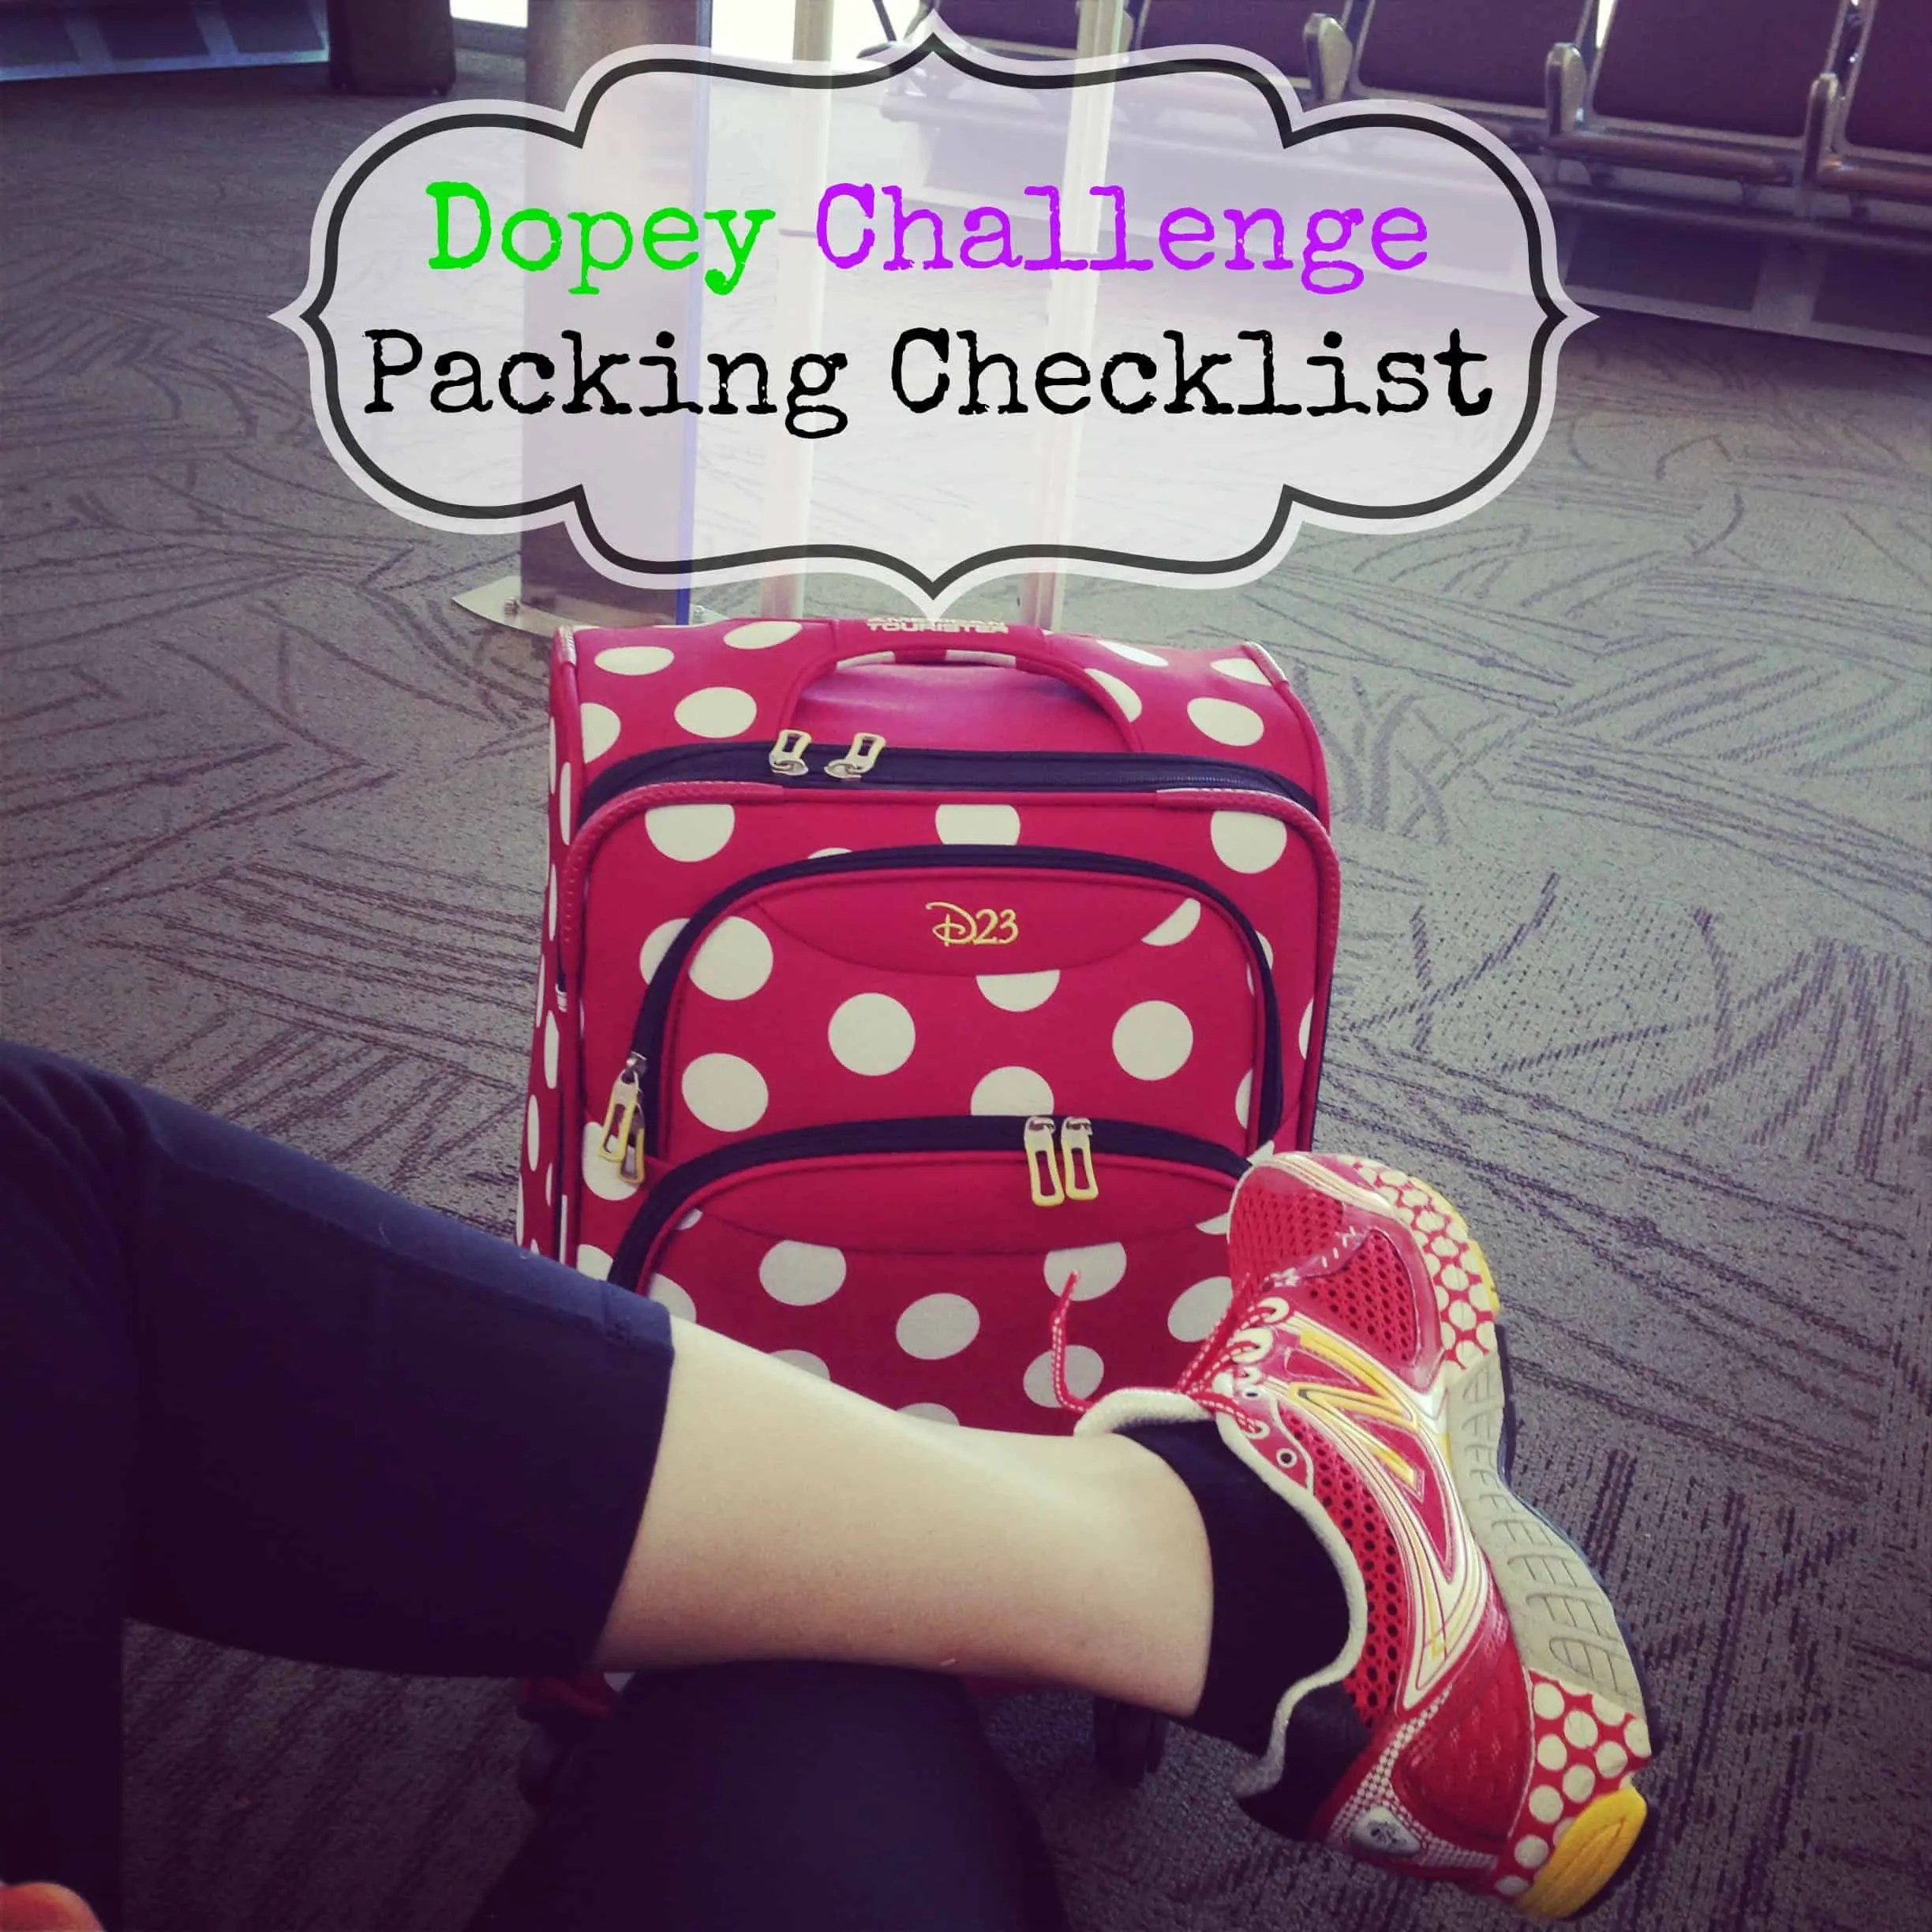 Dopey Challenge packing checklist